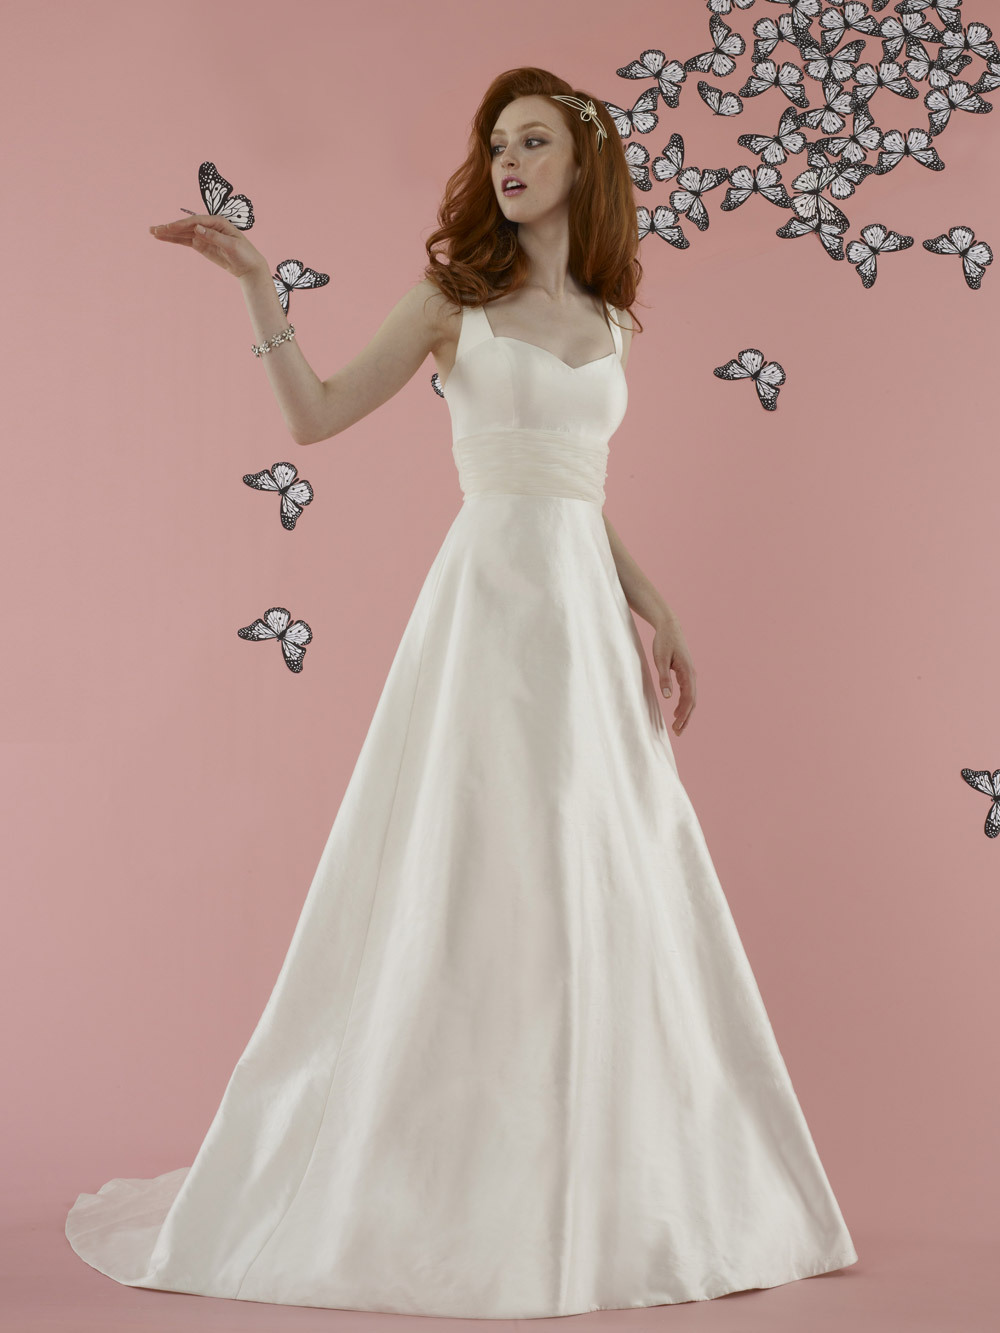 2012-wedding-dress-ysl-inspired-bridal-collection-paula.full